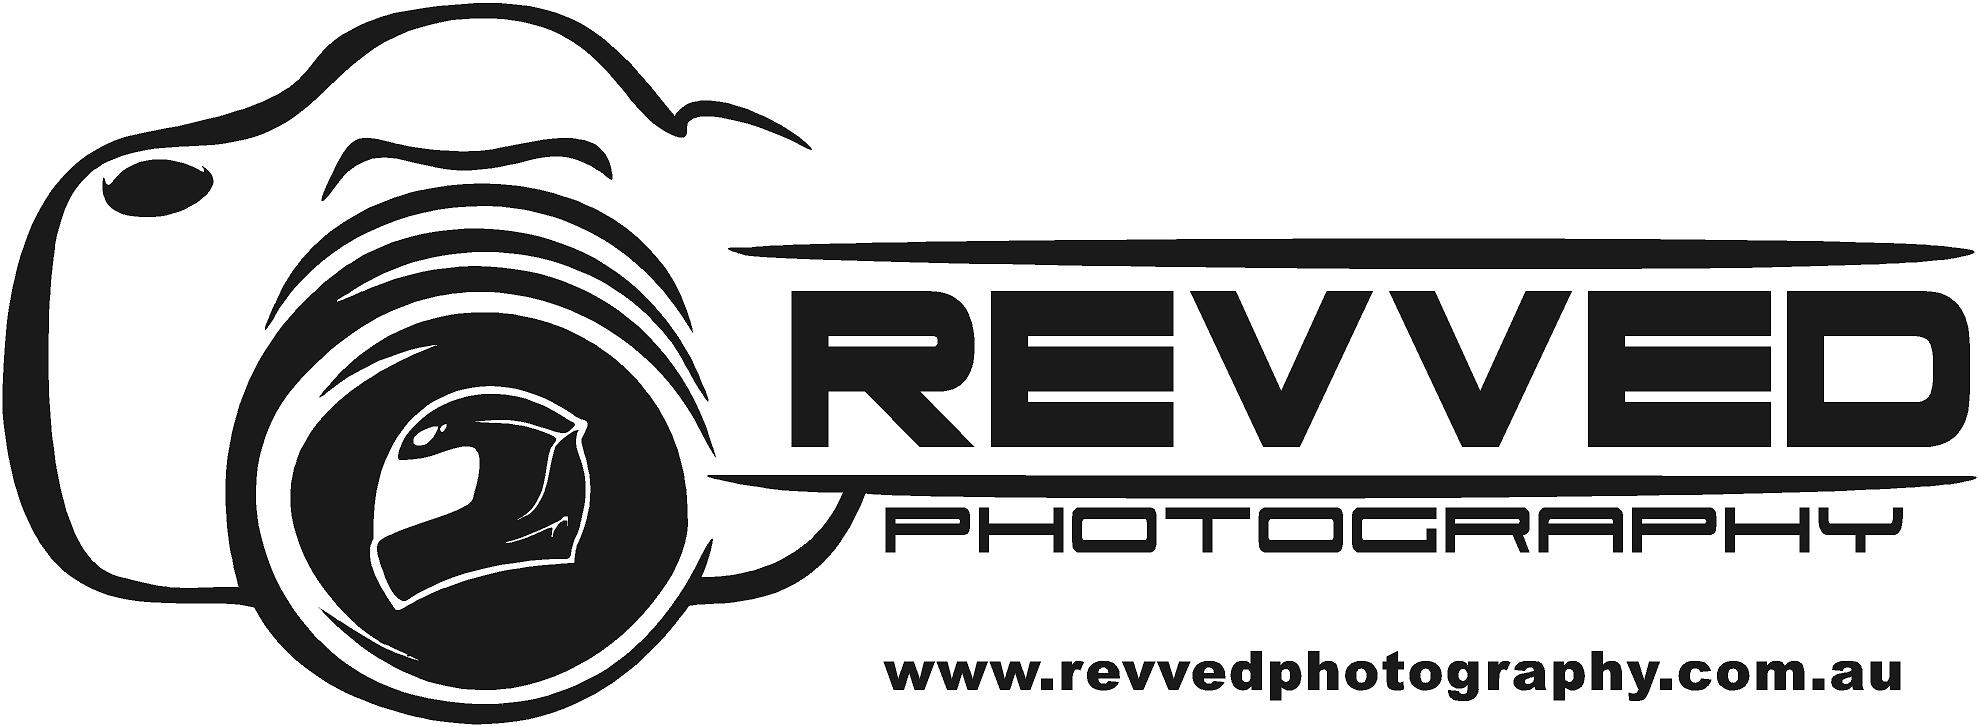 Revved Photography